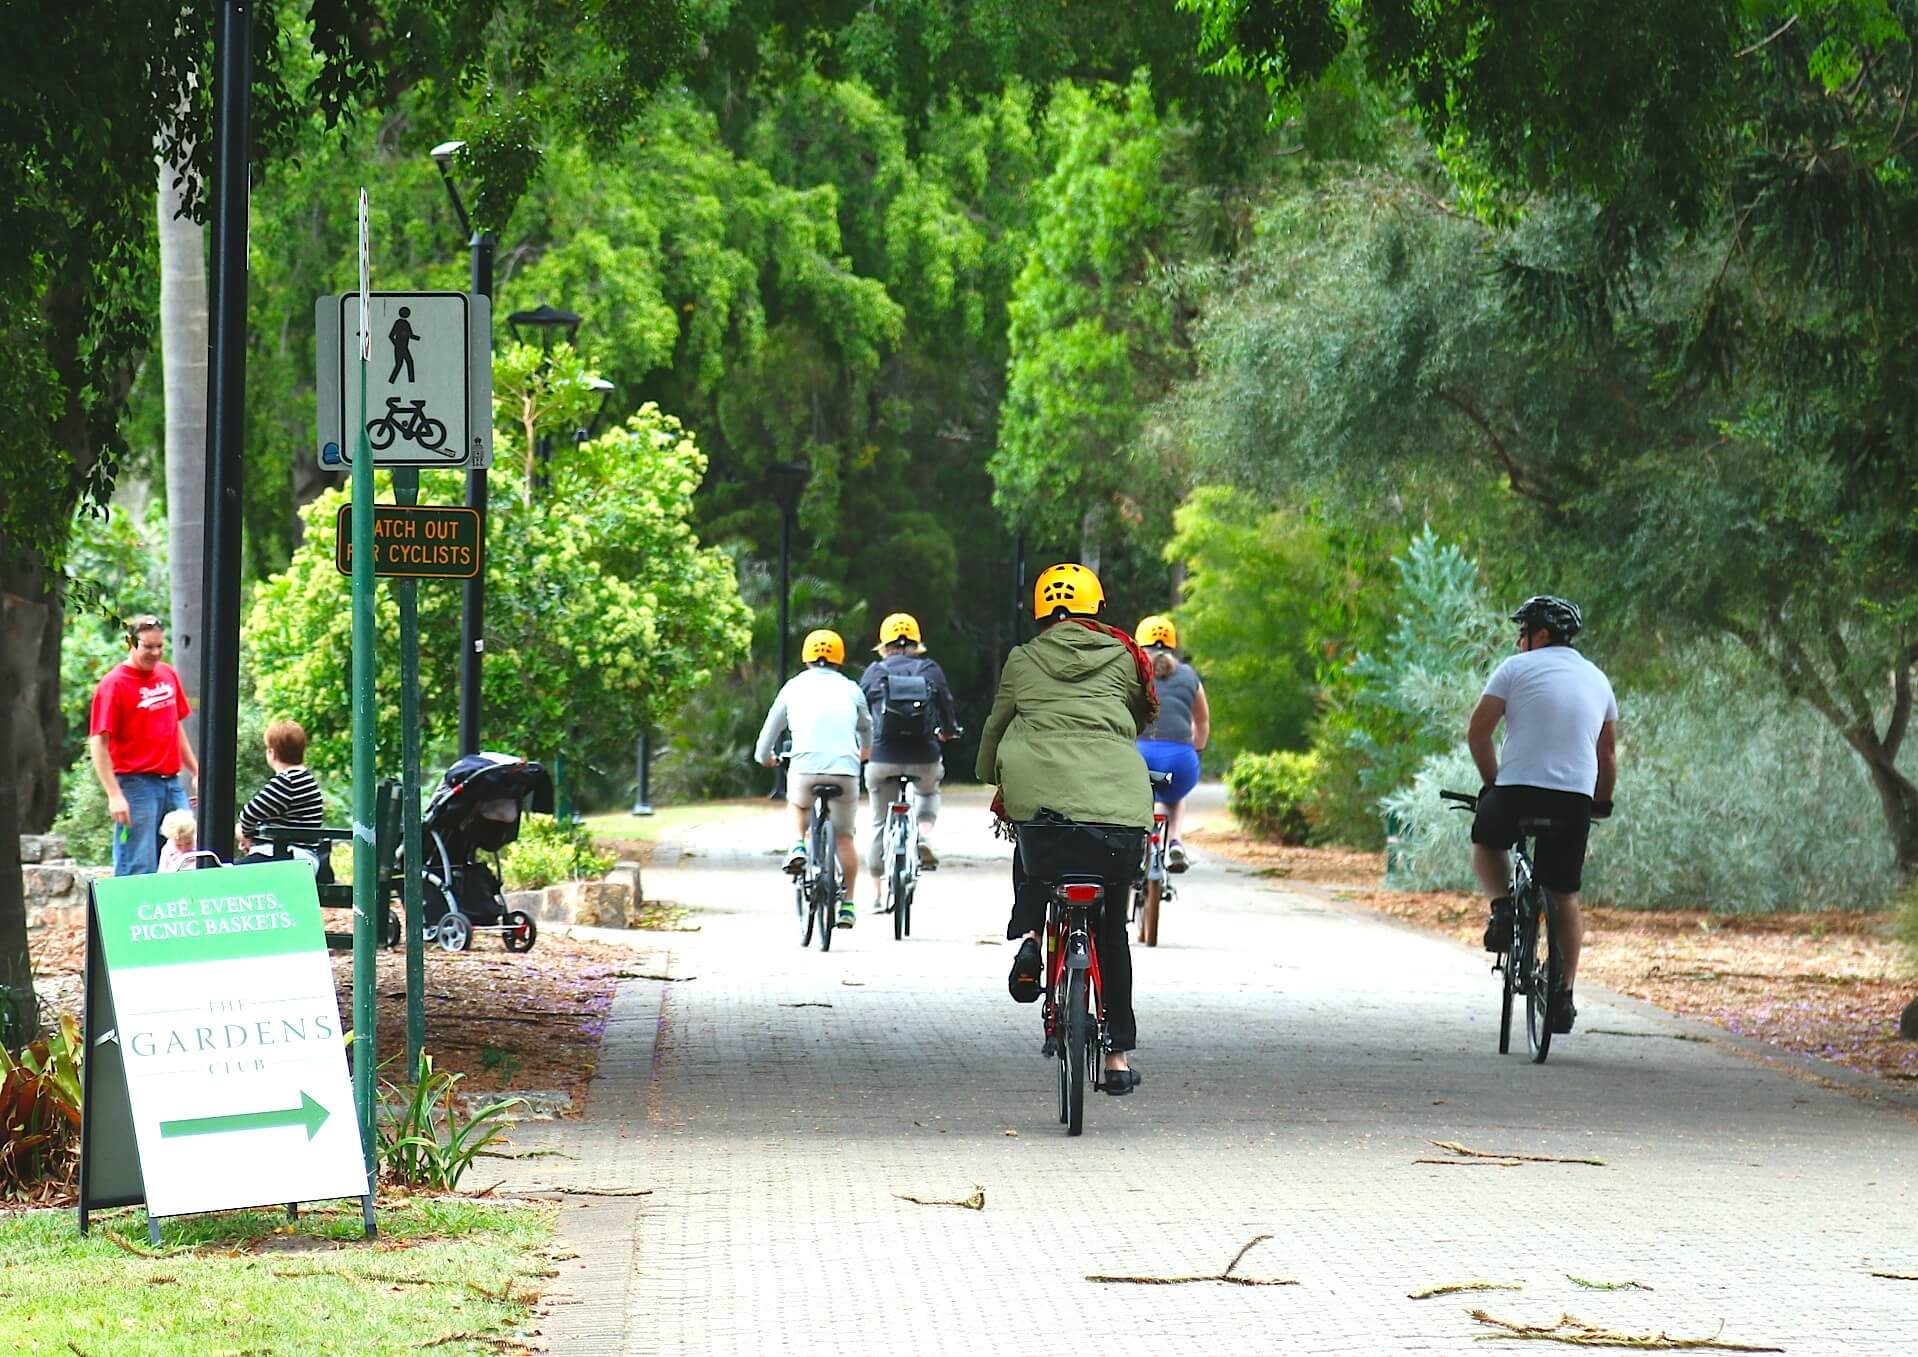 Ride ebike through Brisbane botanic gardens